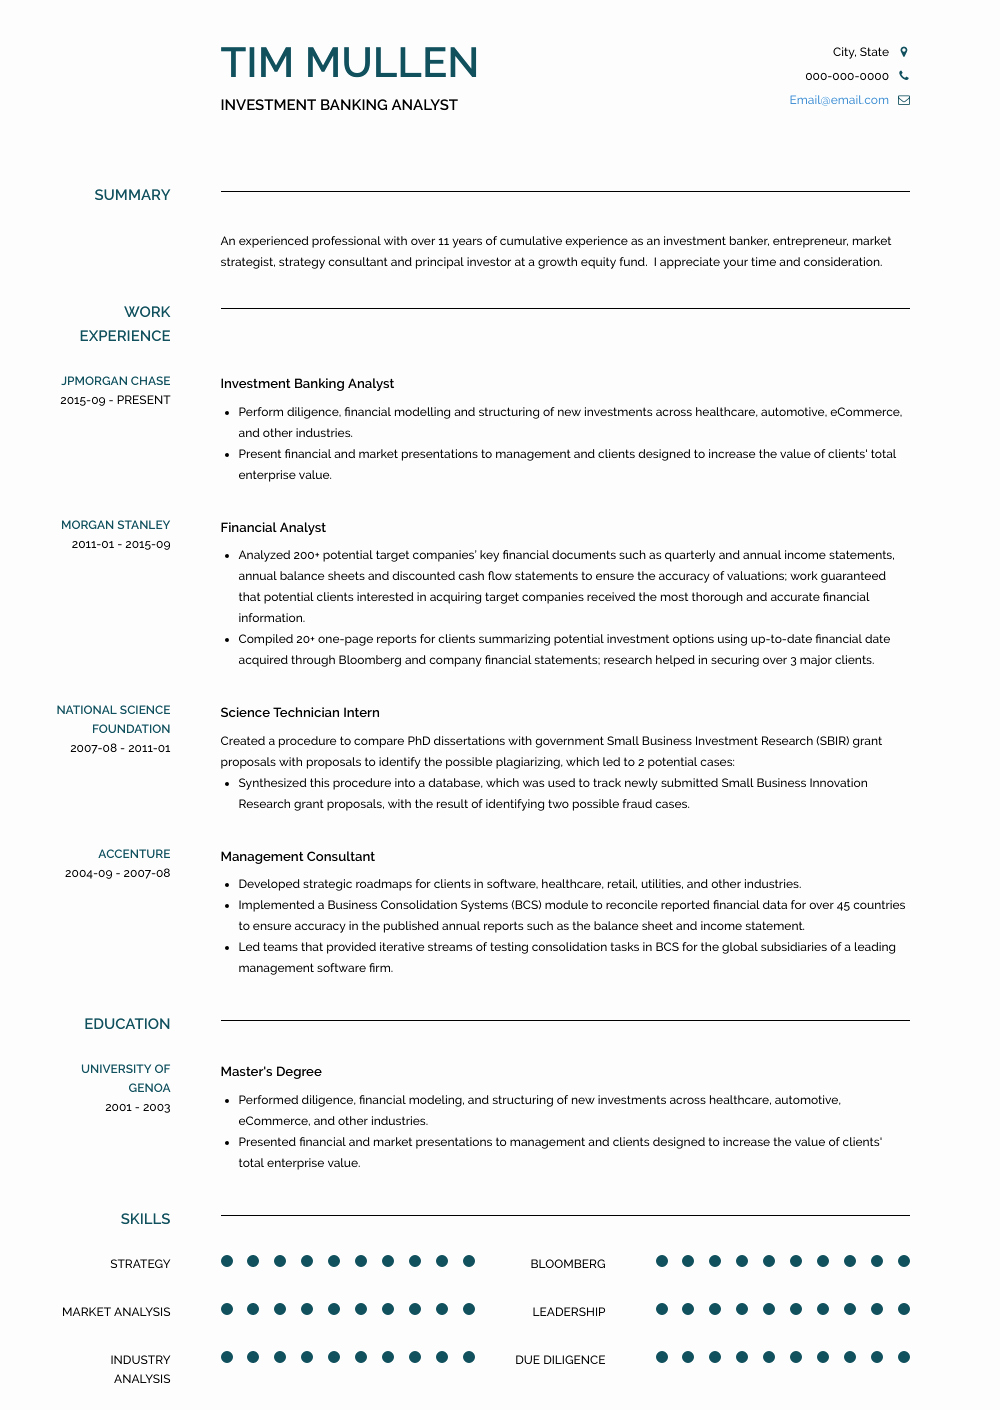 Investment Banking Resume Template Luxury Investment Banking Resume Samples & Templates